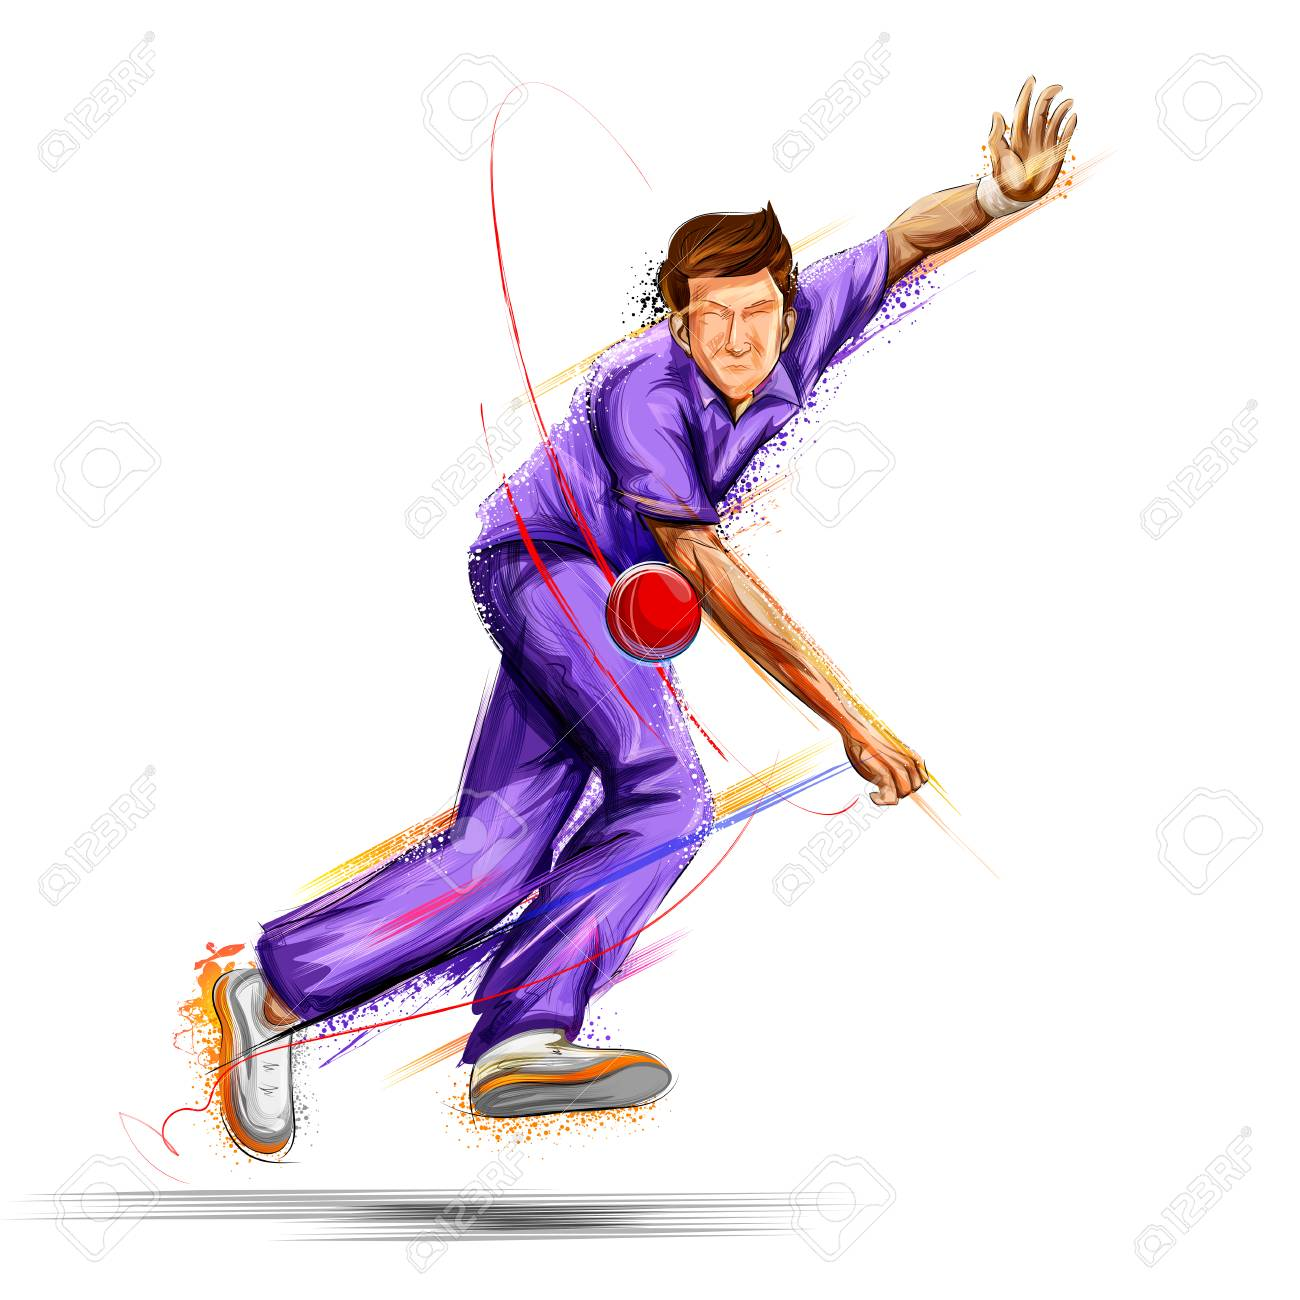 Clipart bowler graphic library Bowler bowling in cricket championship sports » Clipart Station graphic library